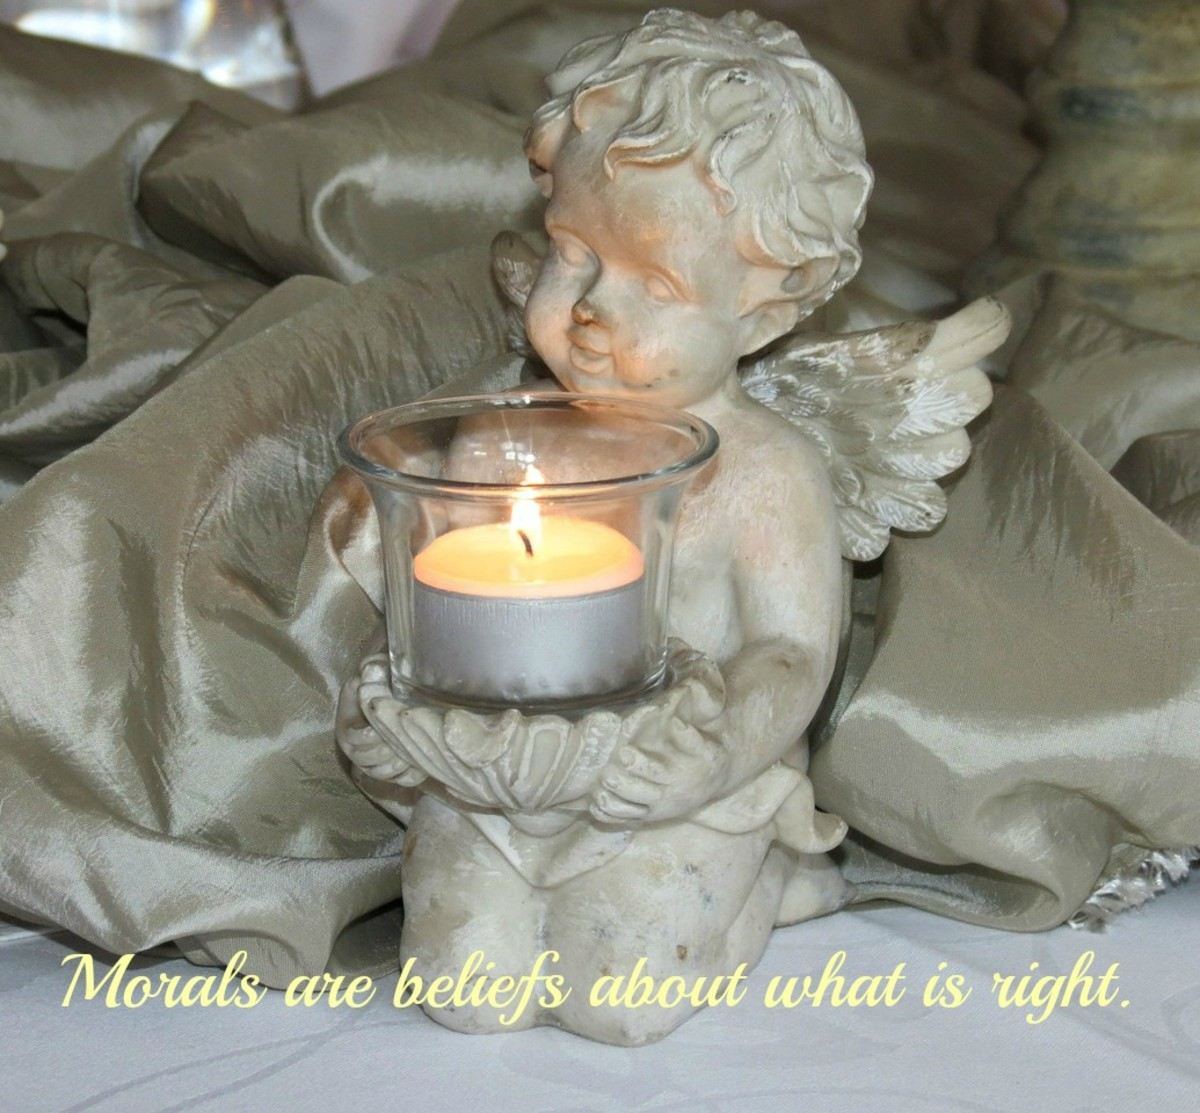 Morals are beliefs about what is right and good.